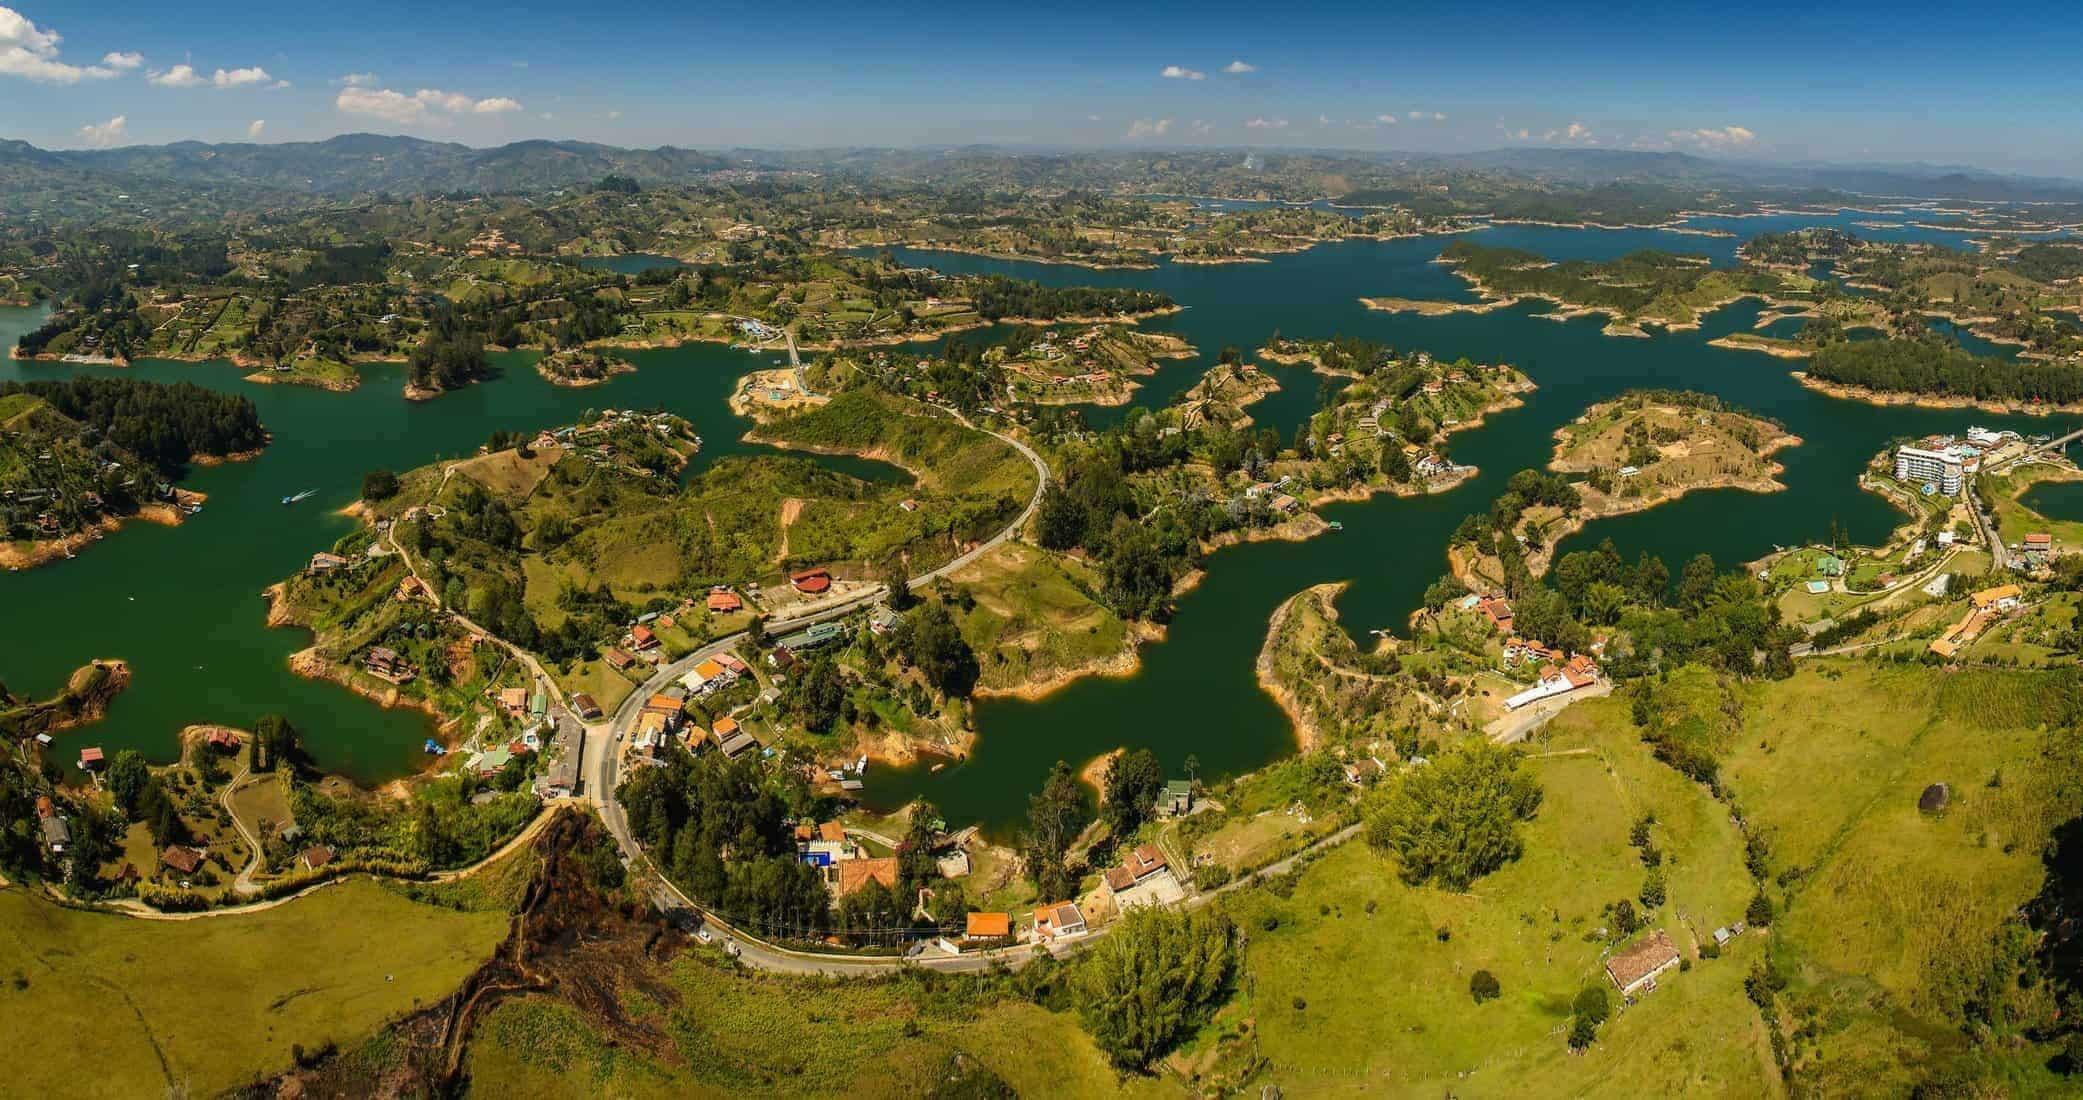 Beatiful landscape from Penol rock view point near town of Guatape, Colombia